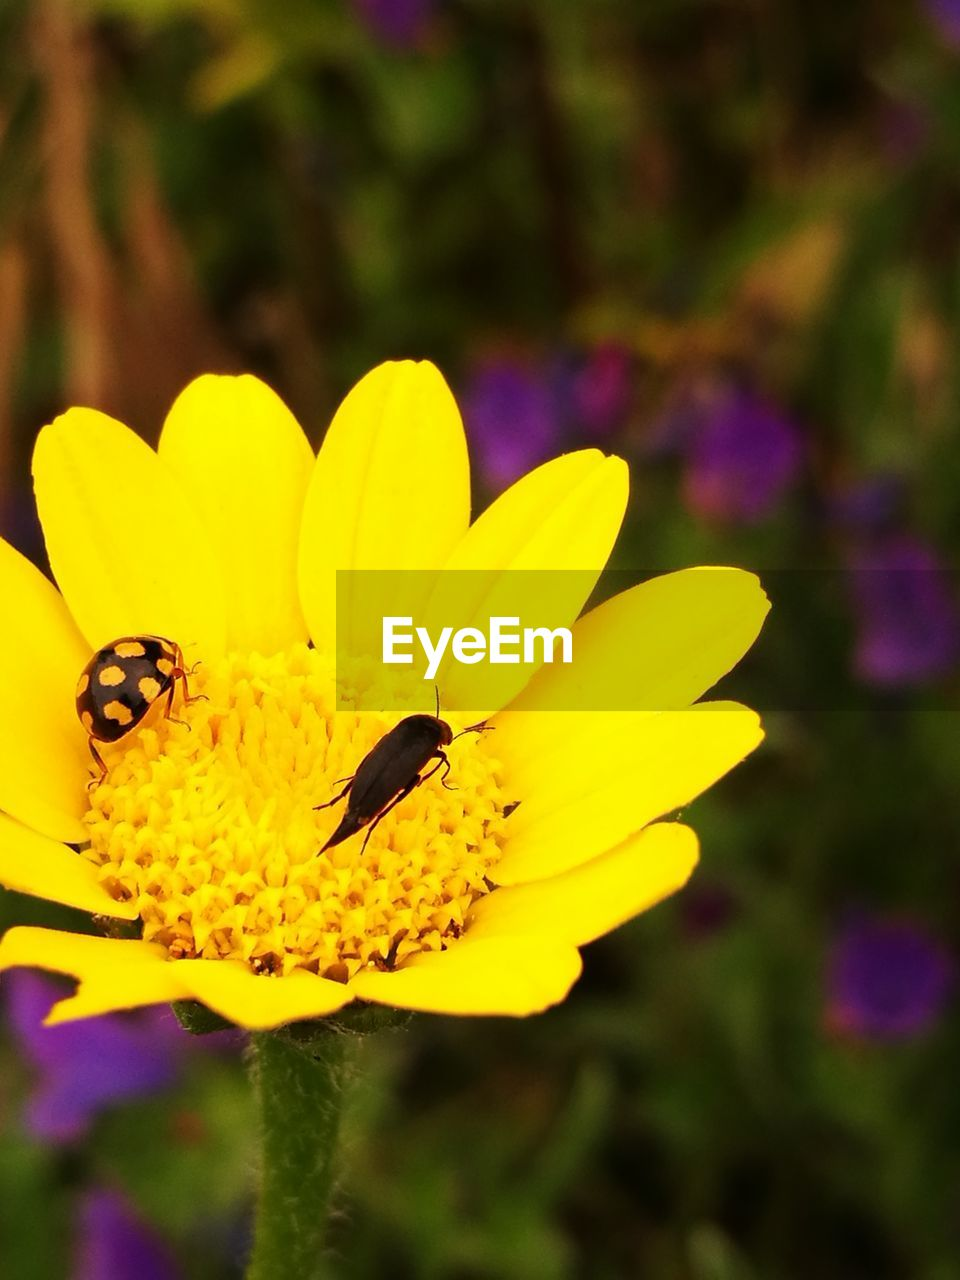 yellow, flower, insect, petal, animal themes, nature, animals in the wild, beauty in nature, fragility, bee, growth, focus on foreground, plant, outdoors, one animal, flower head, animal wildlife, day, no people, close-up, pollination, freshness, blooming, buzzing